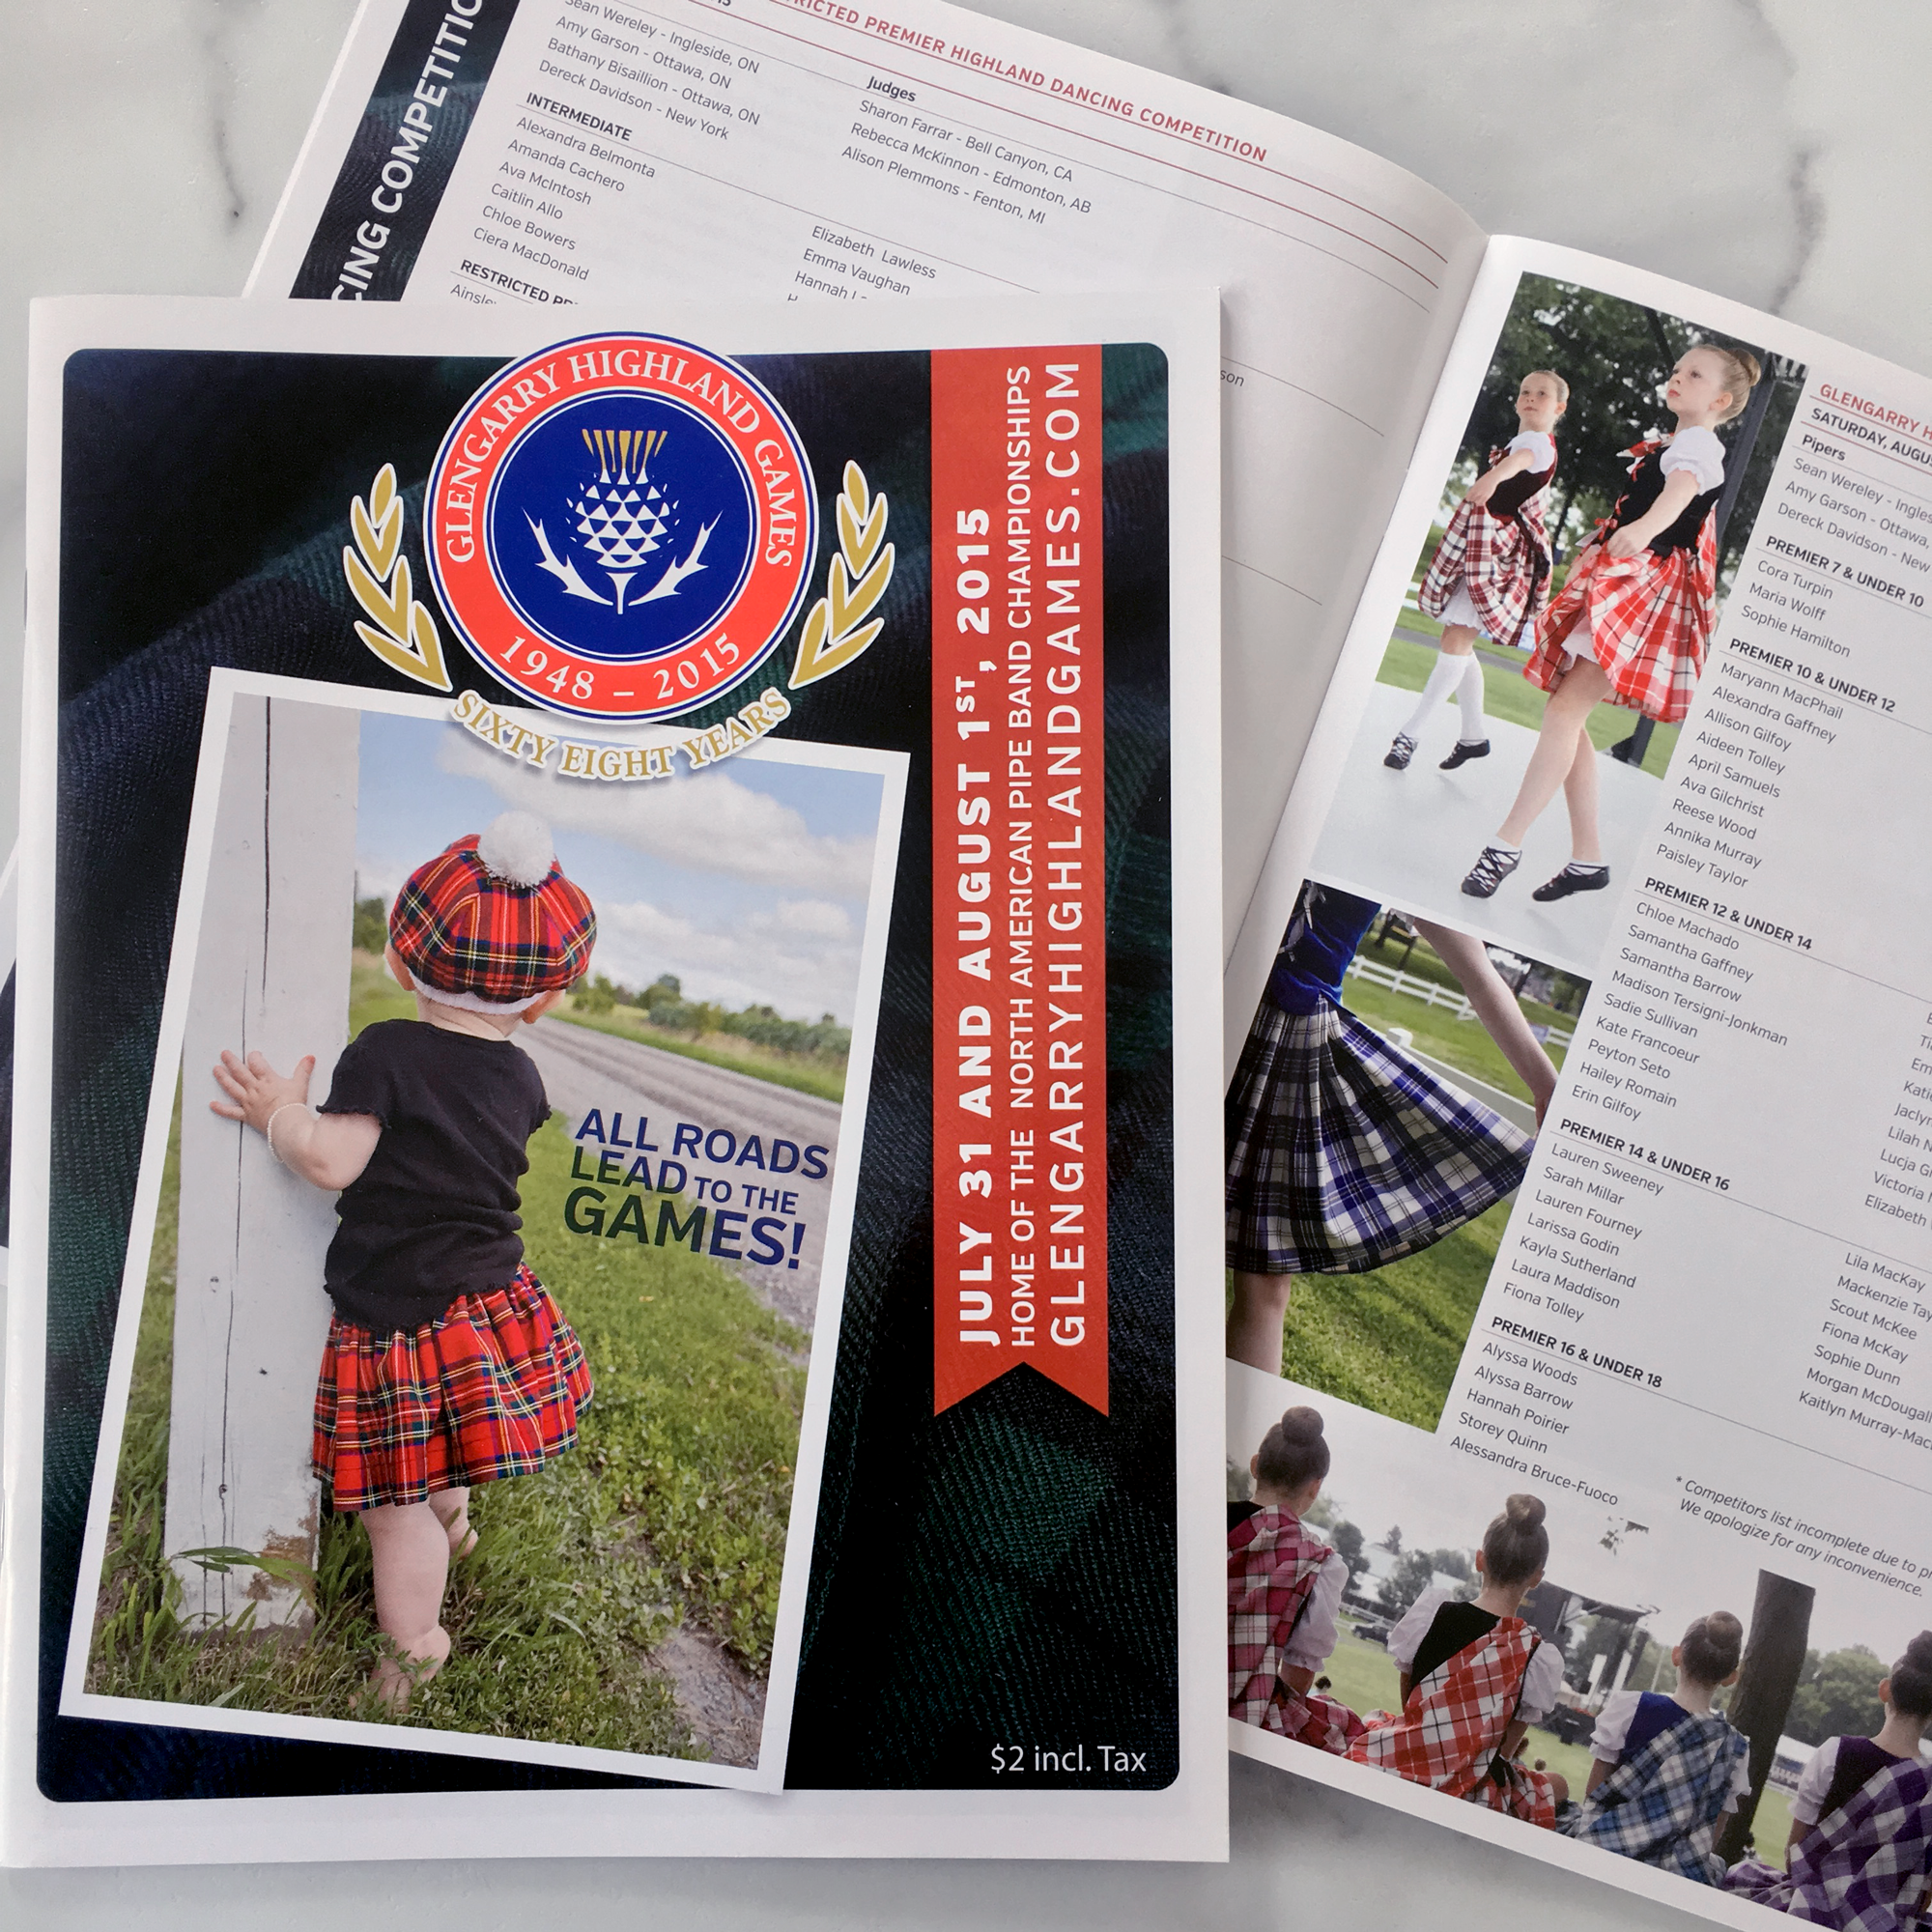 Full program (102 pages) / Glengarry Highland Games